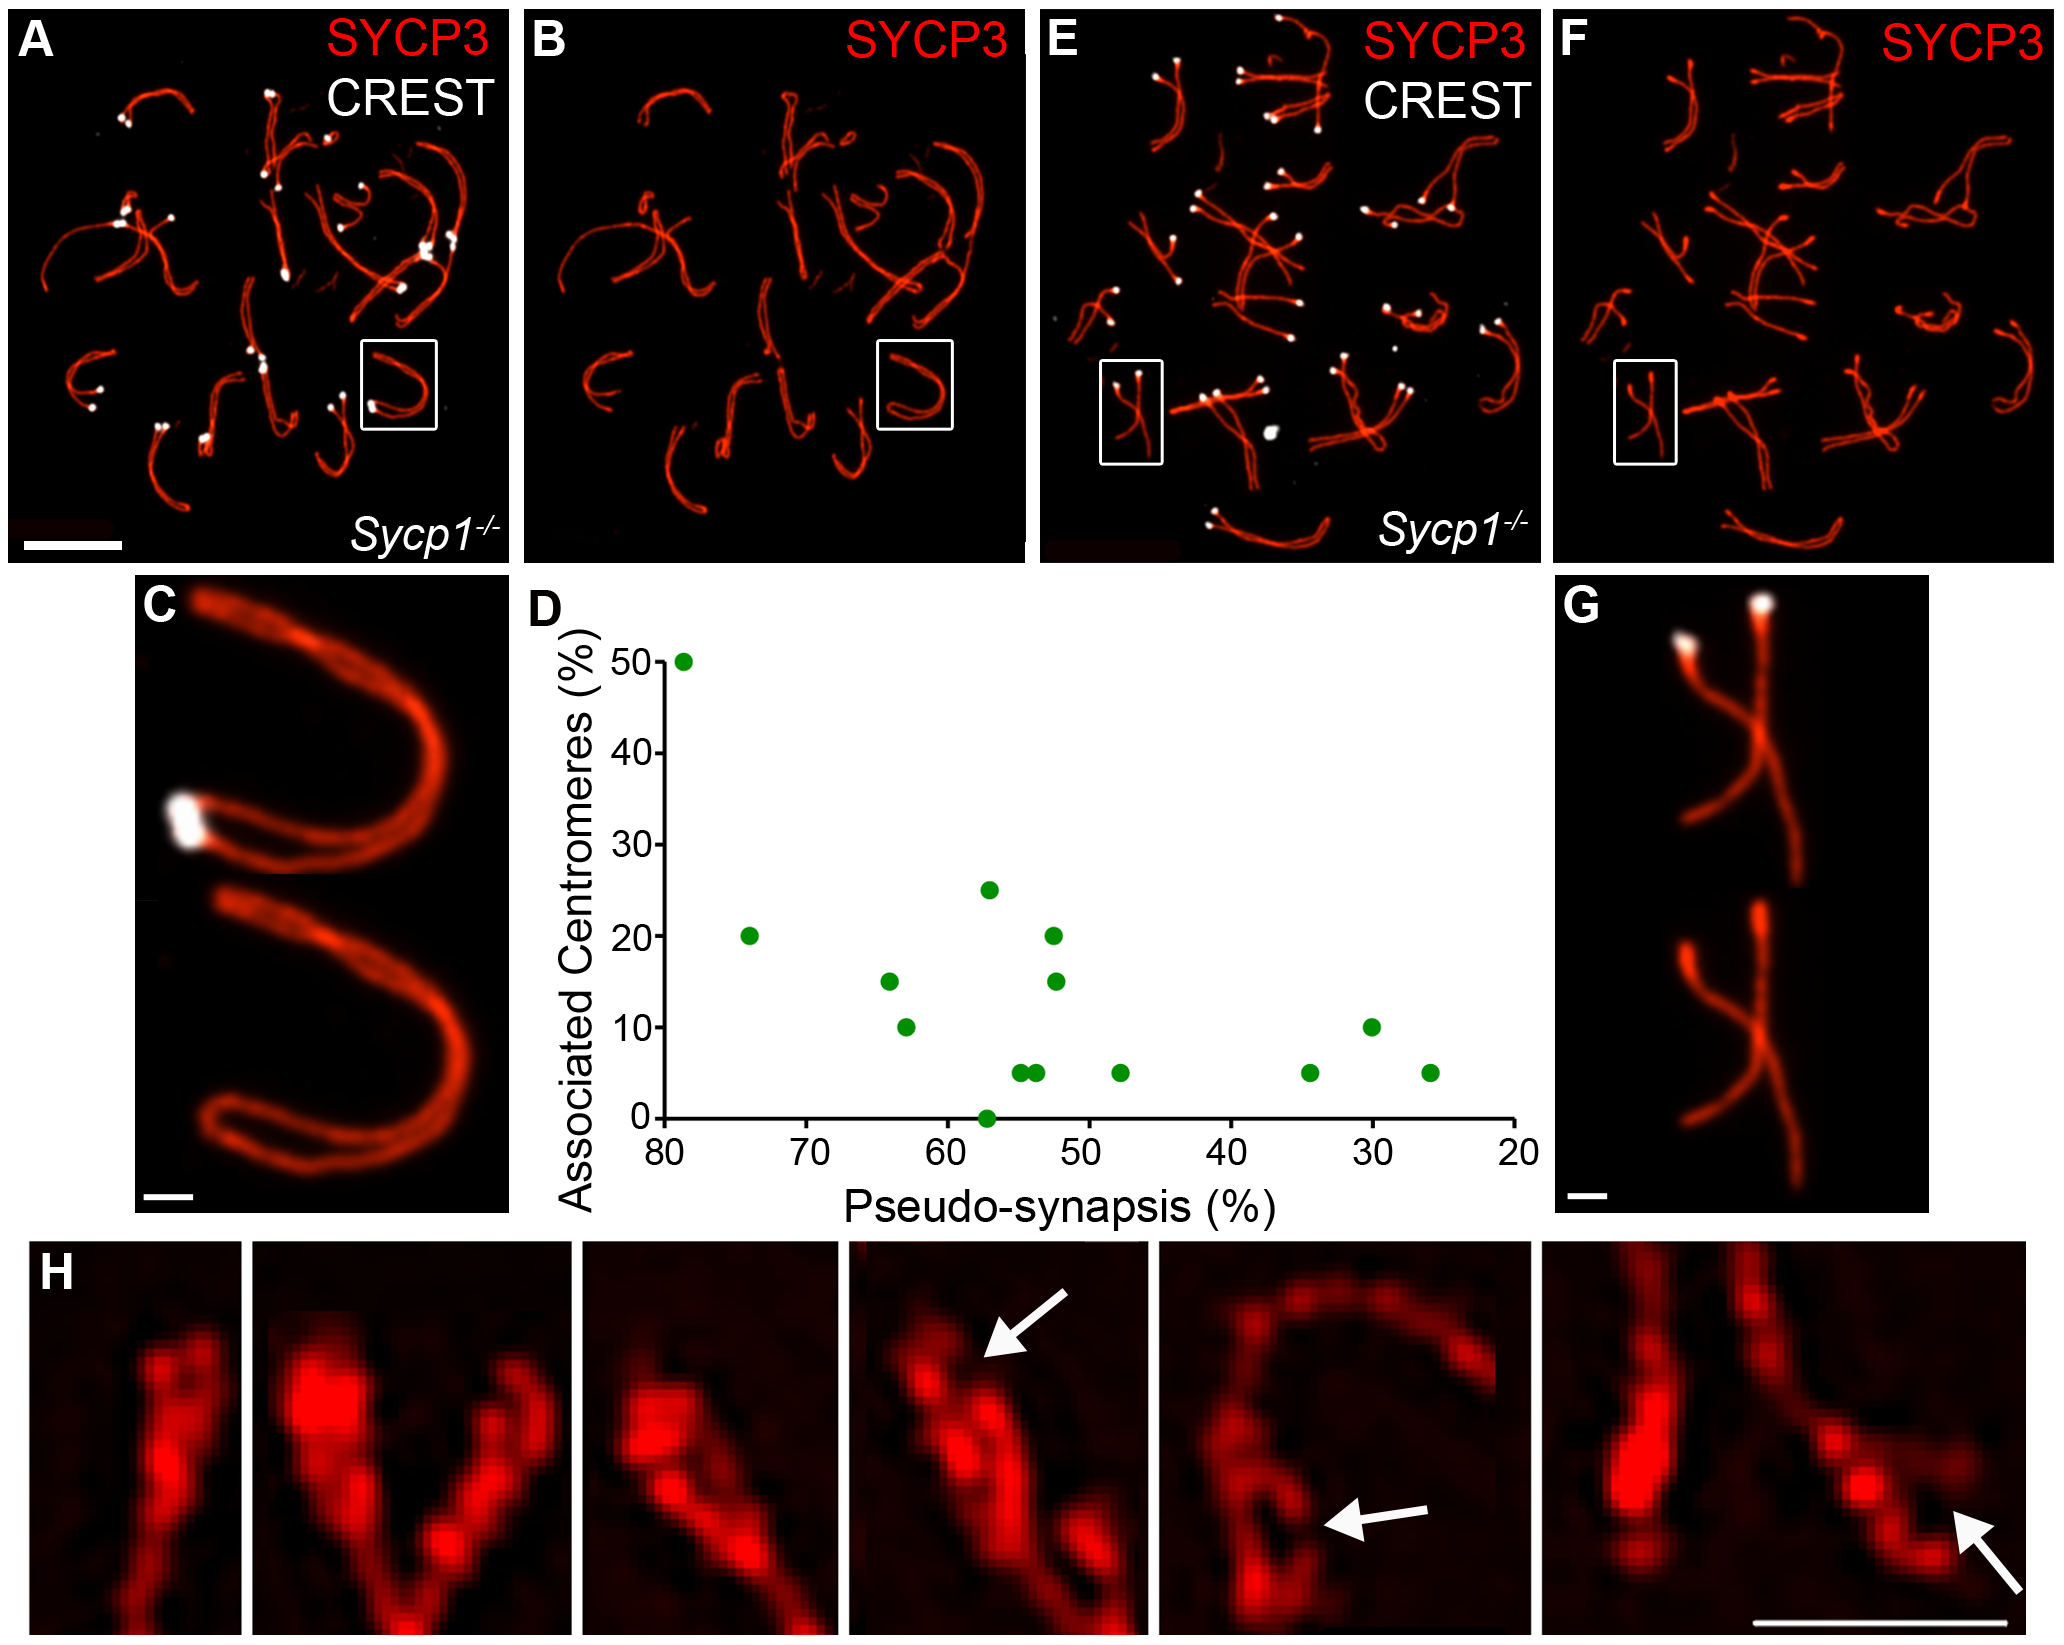 Centromere association and morphology of centromere regions in the absence of synapsis.